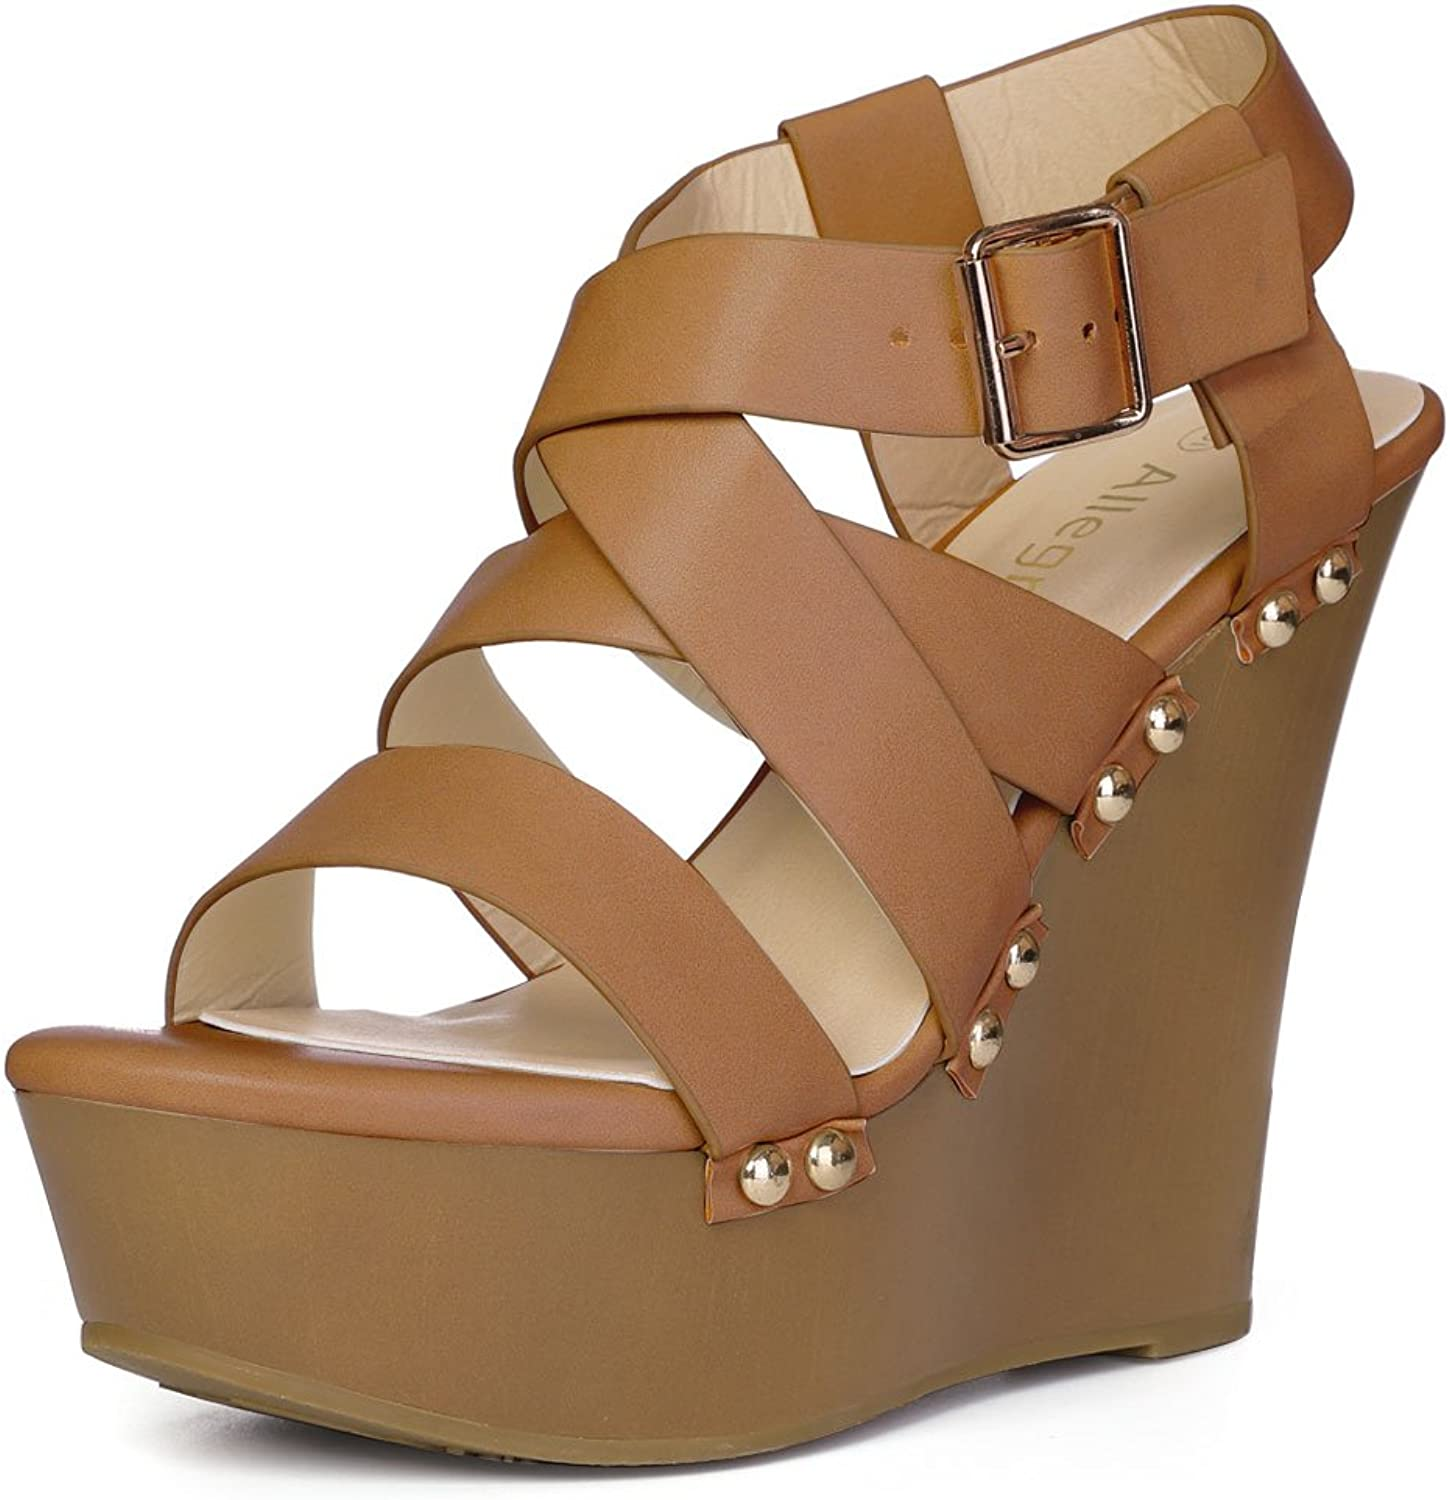 Allegra K Women's Strappy Wedge Sandals